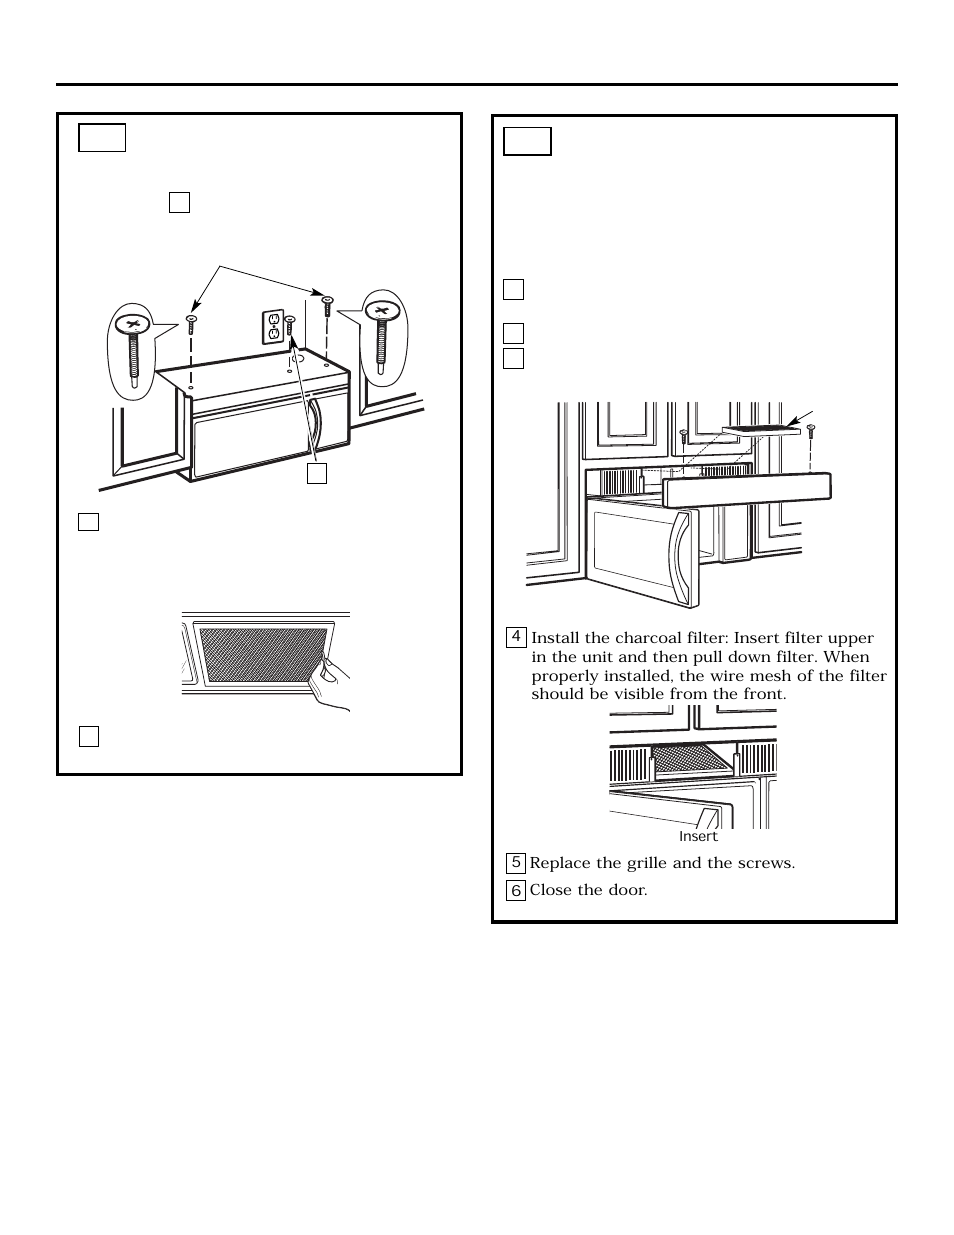 installation instructions mount the microwave oven cont c4 22 rh manualsdir com frigidaire microwave user manual frigidaire gallery microwave installation instructions